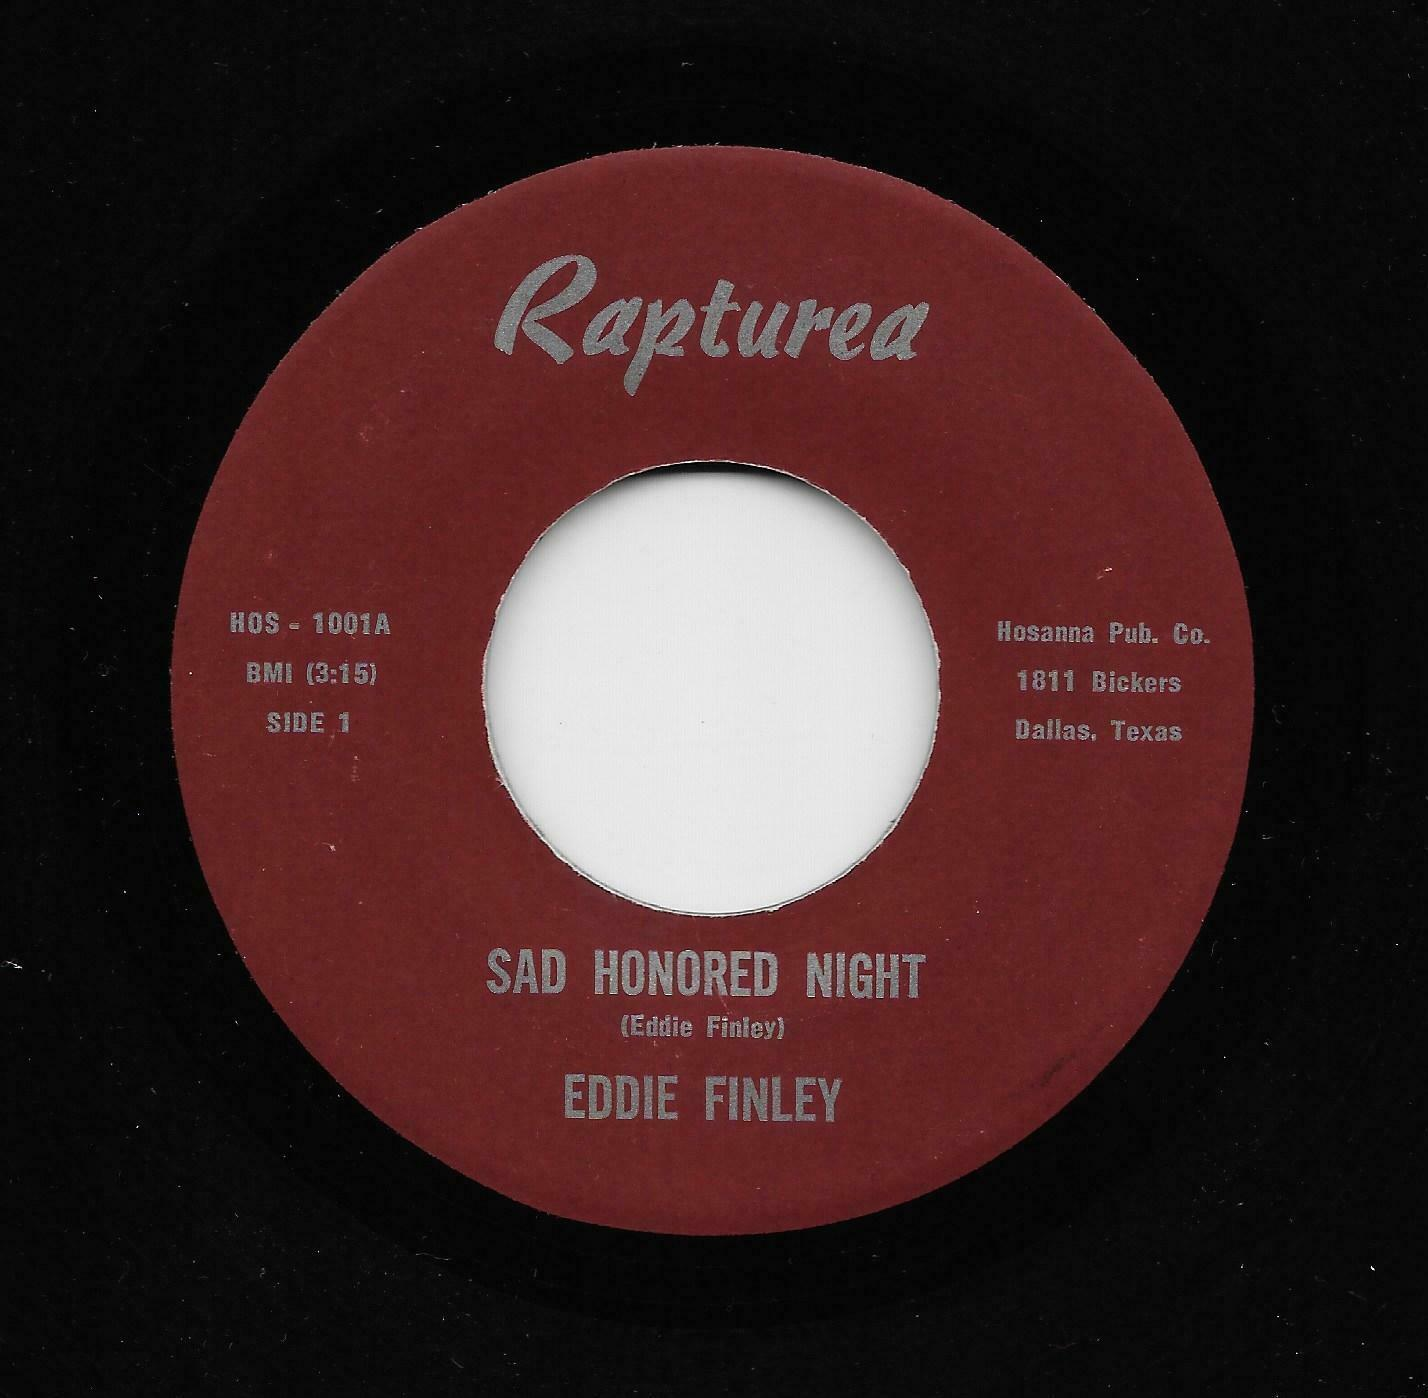 Eddie Finley - Sad Honored Night / Creations Band - Heavy Hips (Soul, 45) 1001